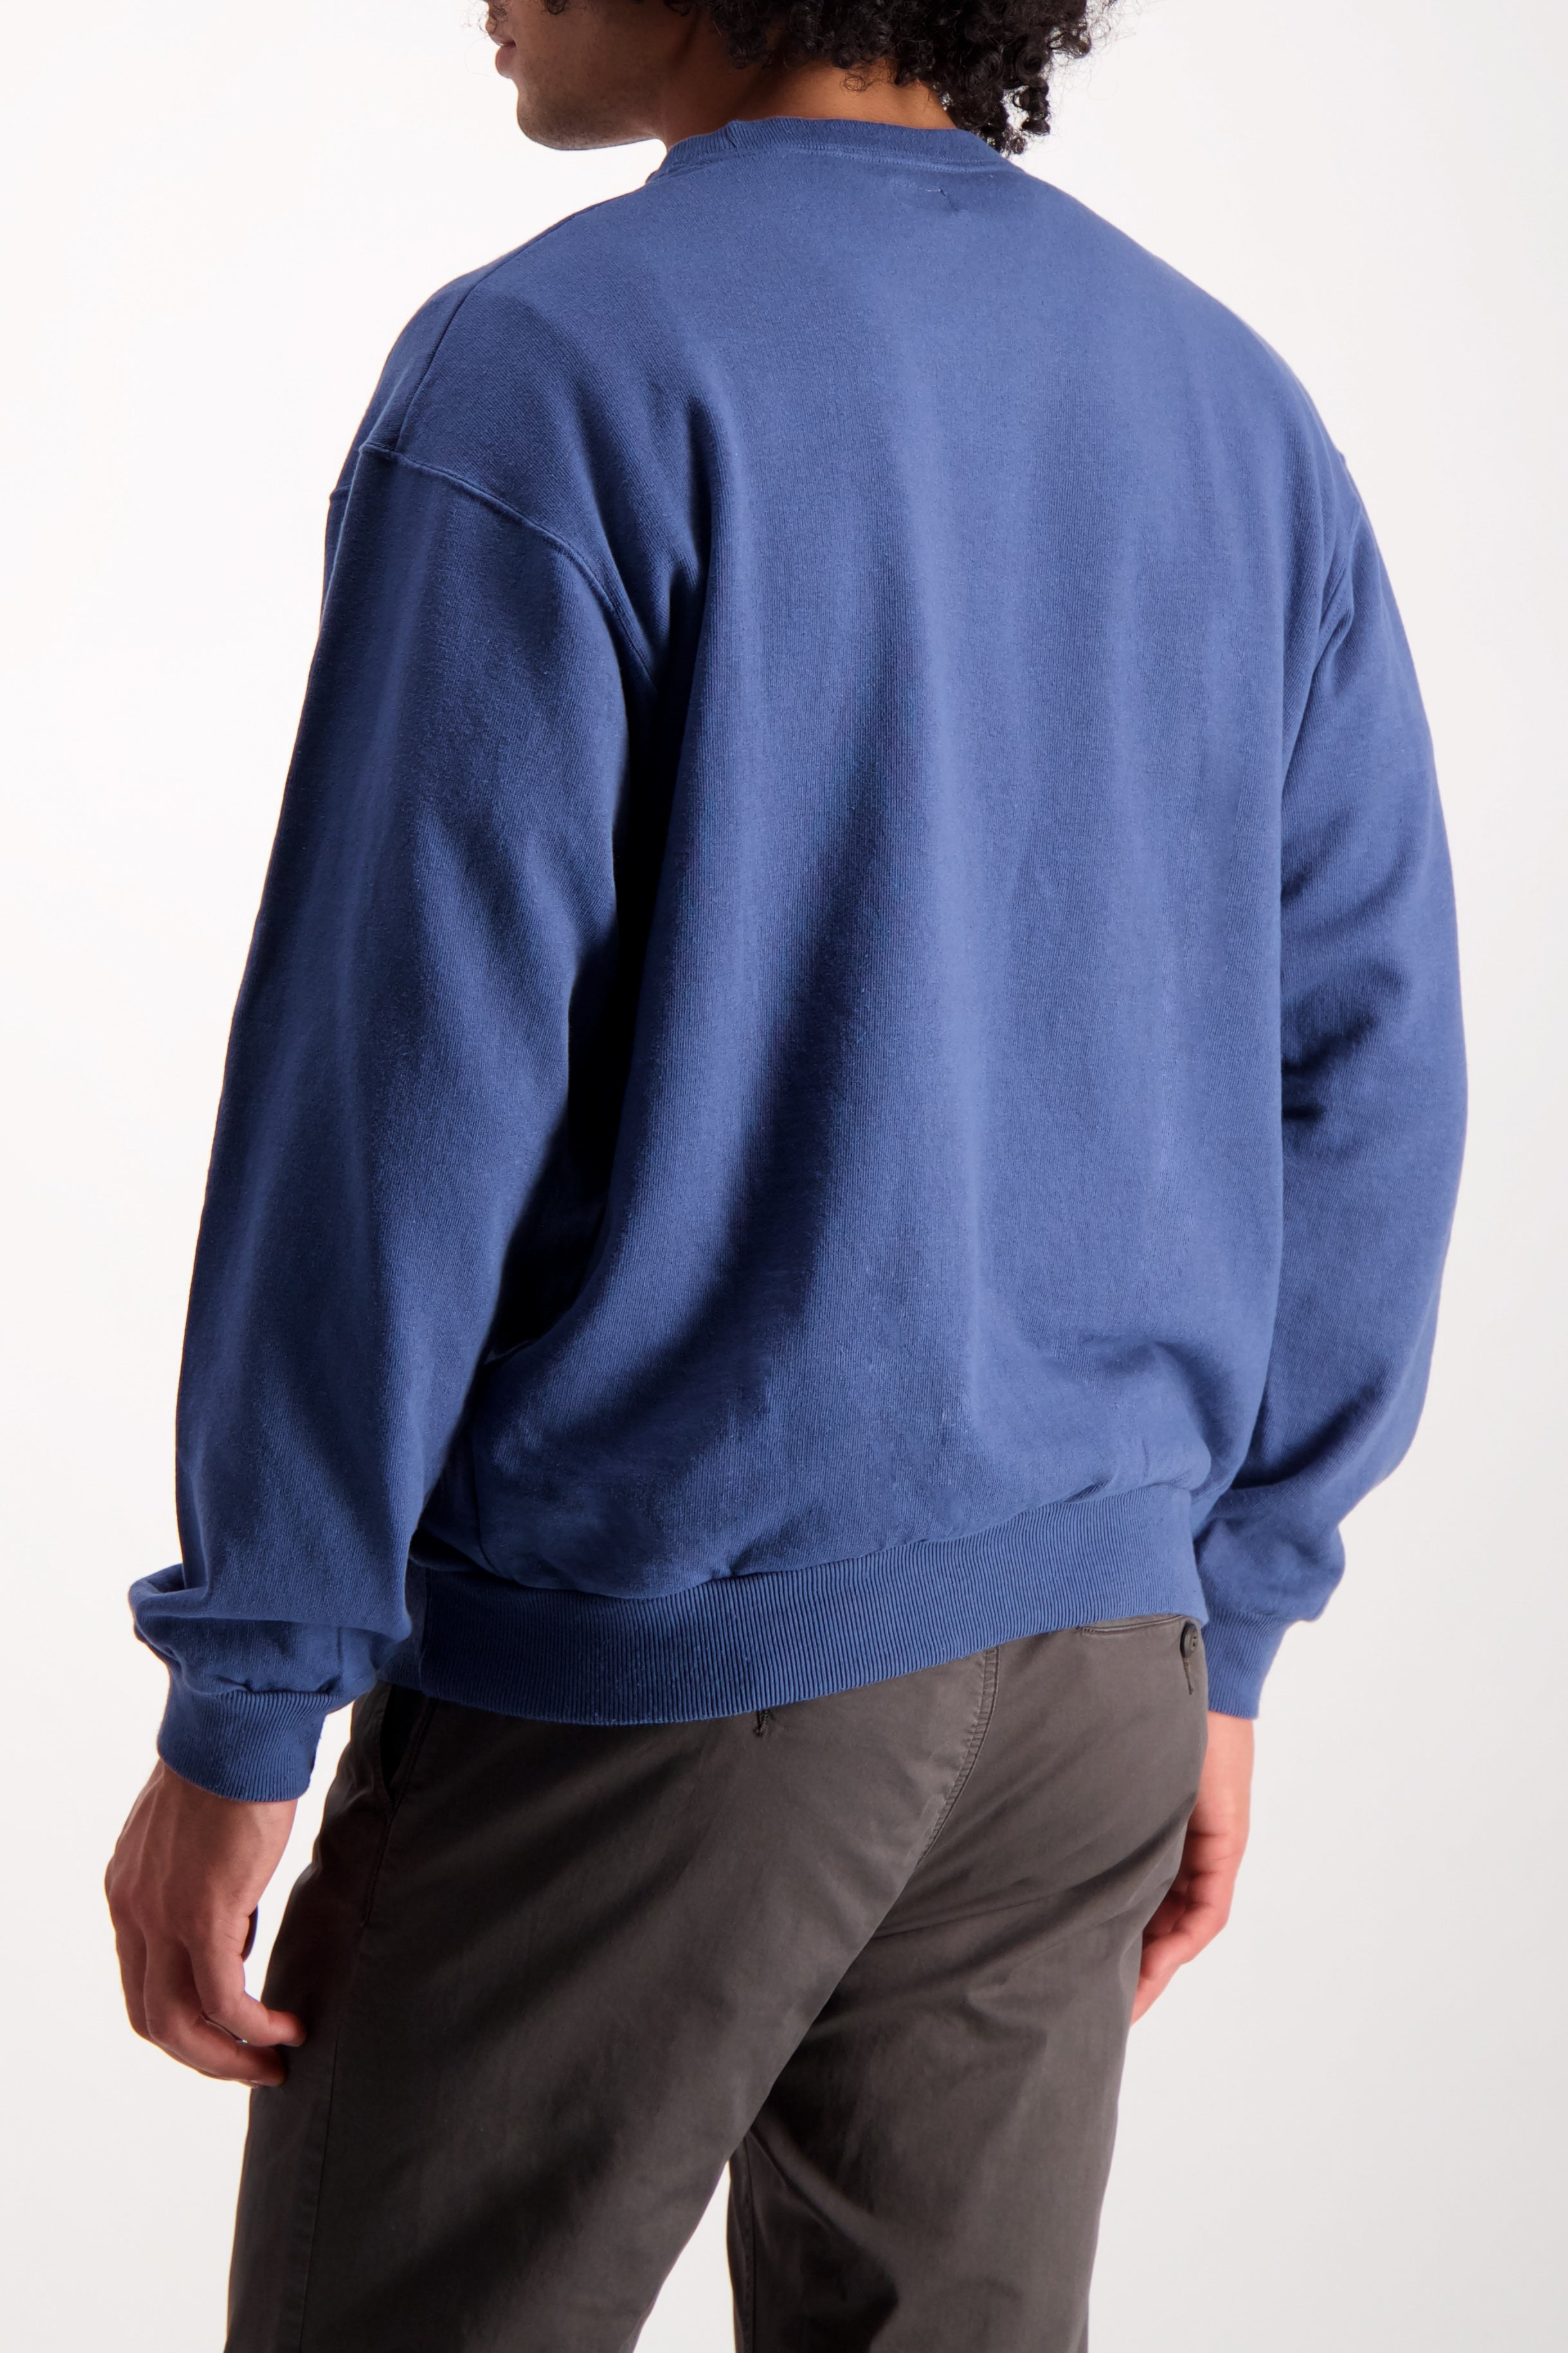 Back Crop Image Of Model Wearing Dubble Works Pocket Crewneck